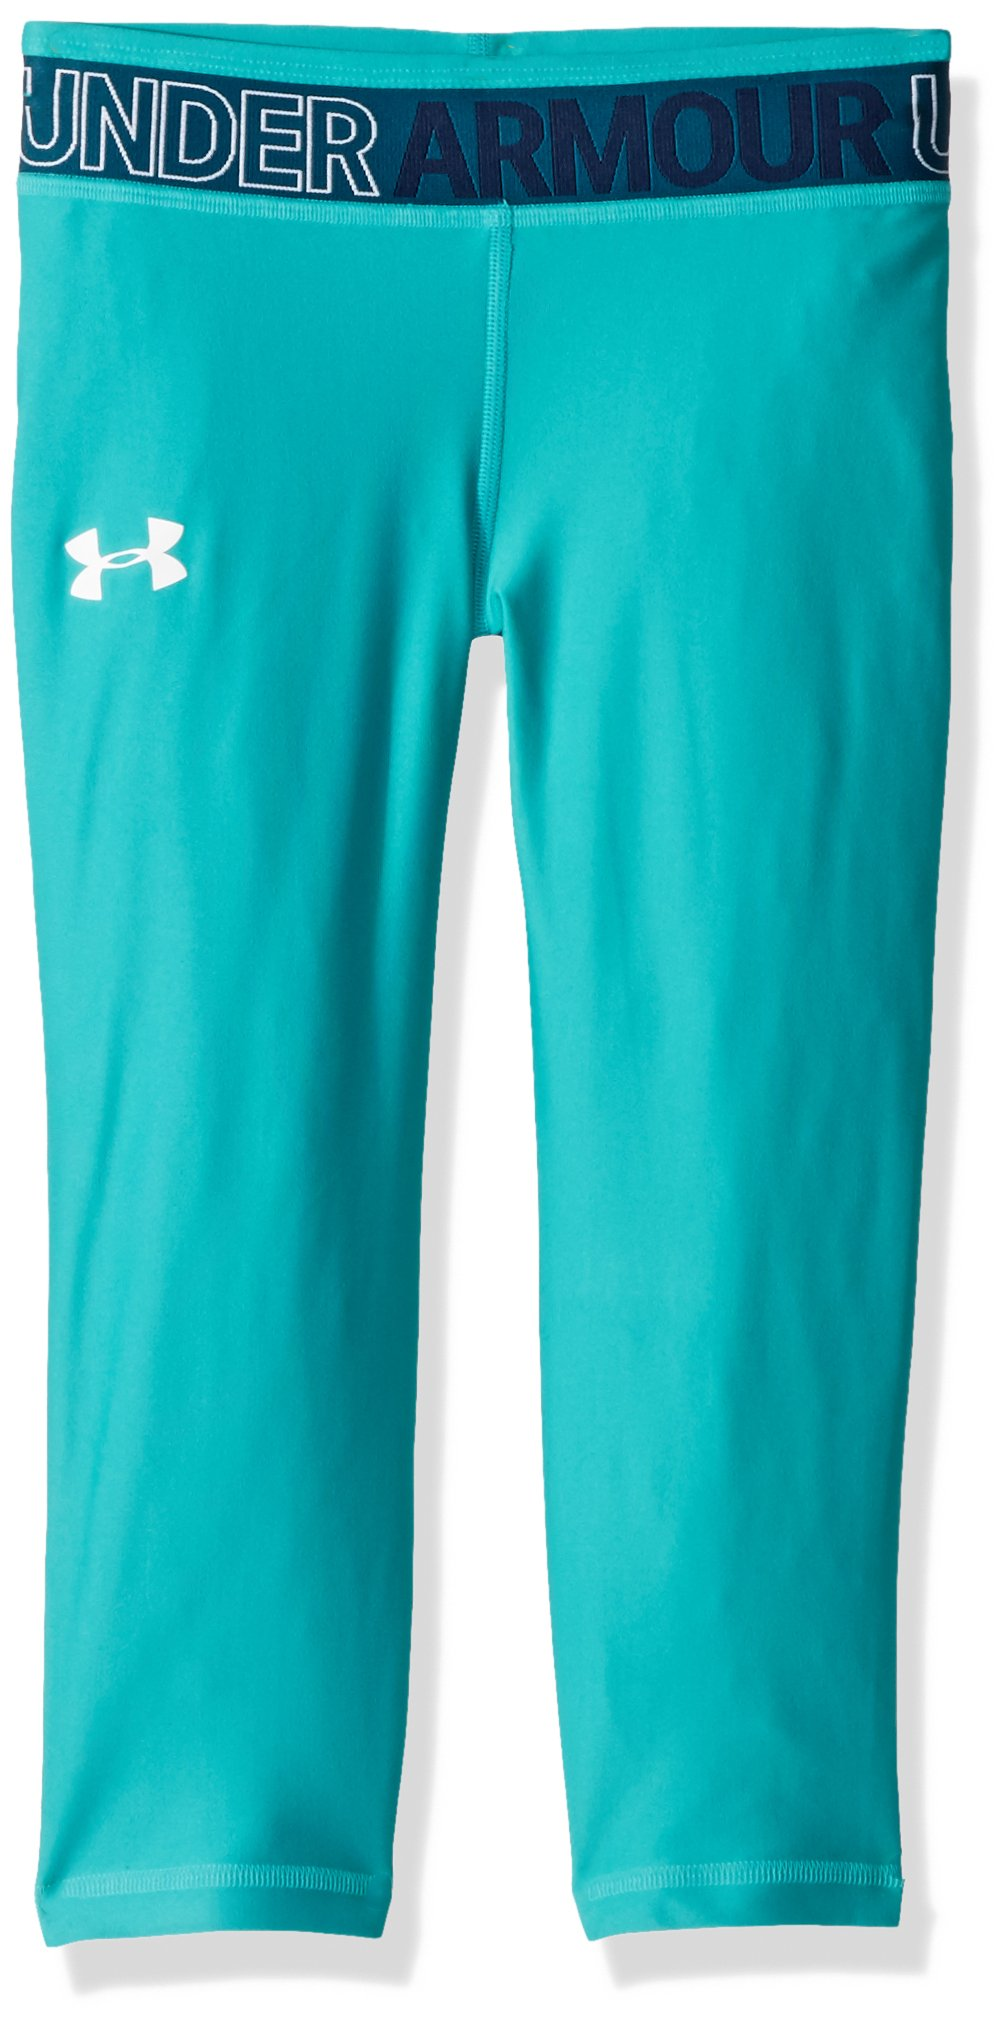 Under Armour Girls' HeatGear Armour Capris, Teal Punch /White, Youth Small by Under Armour